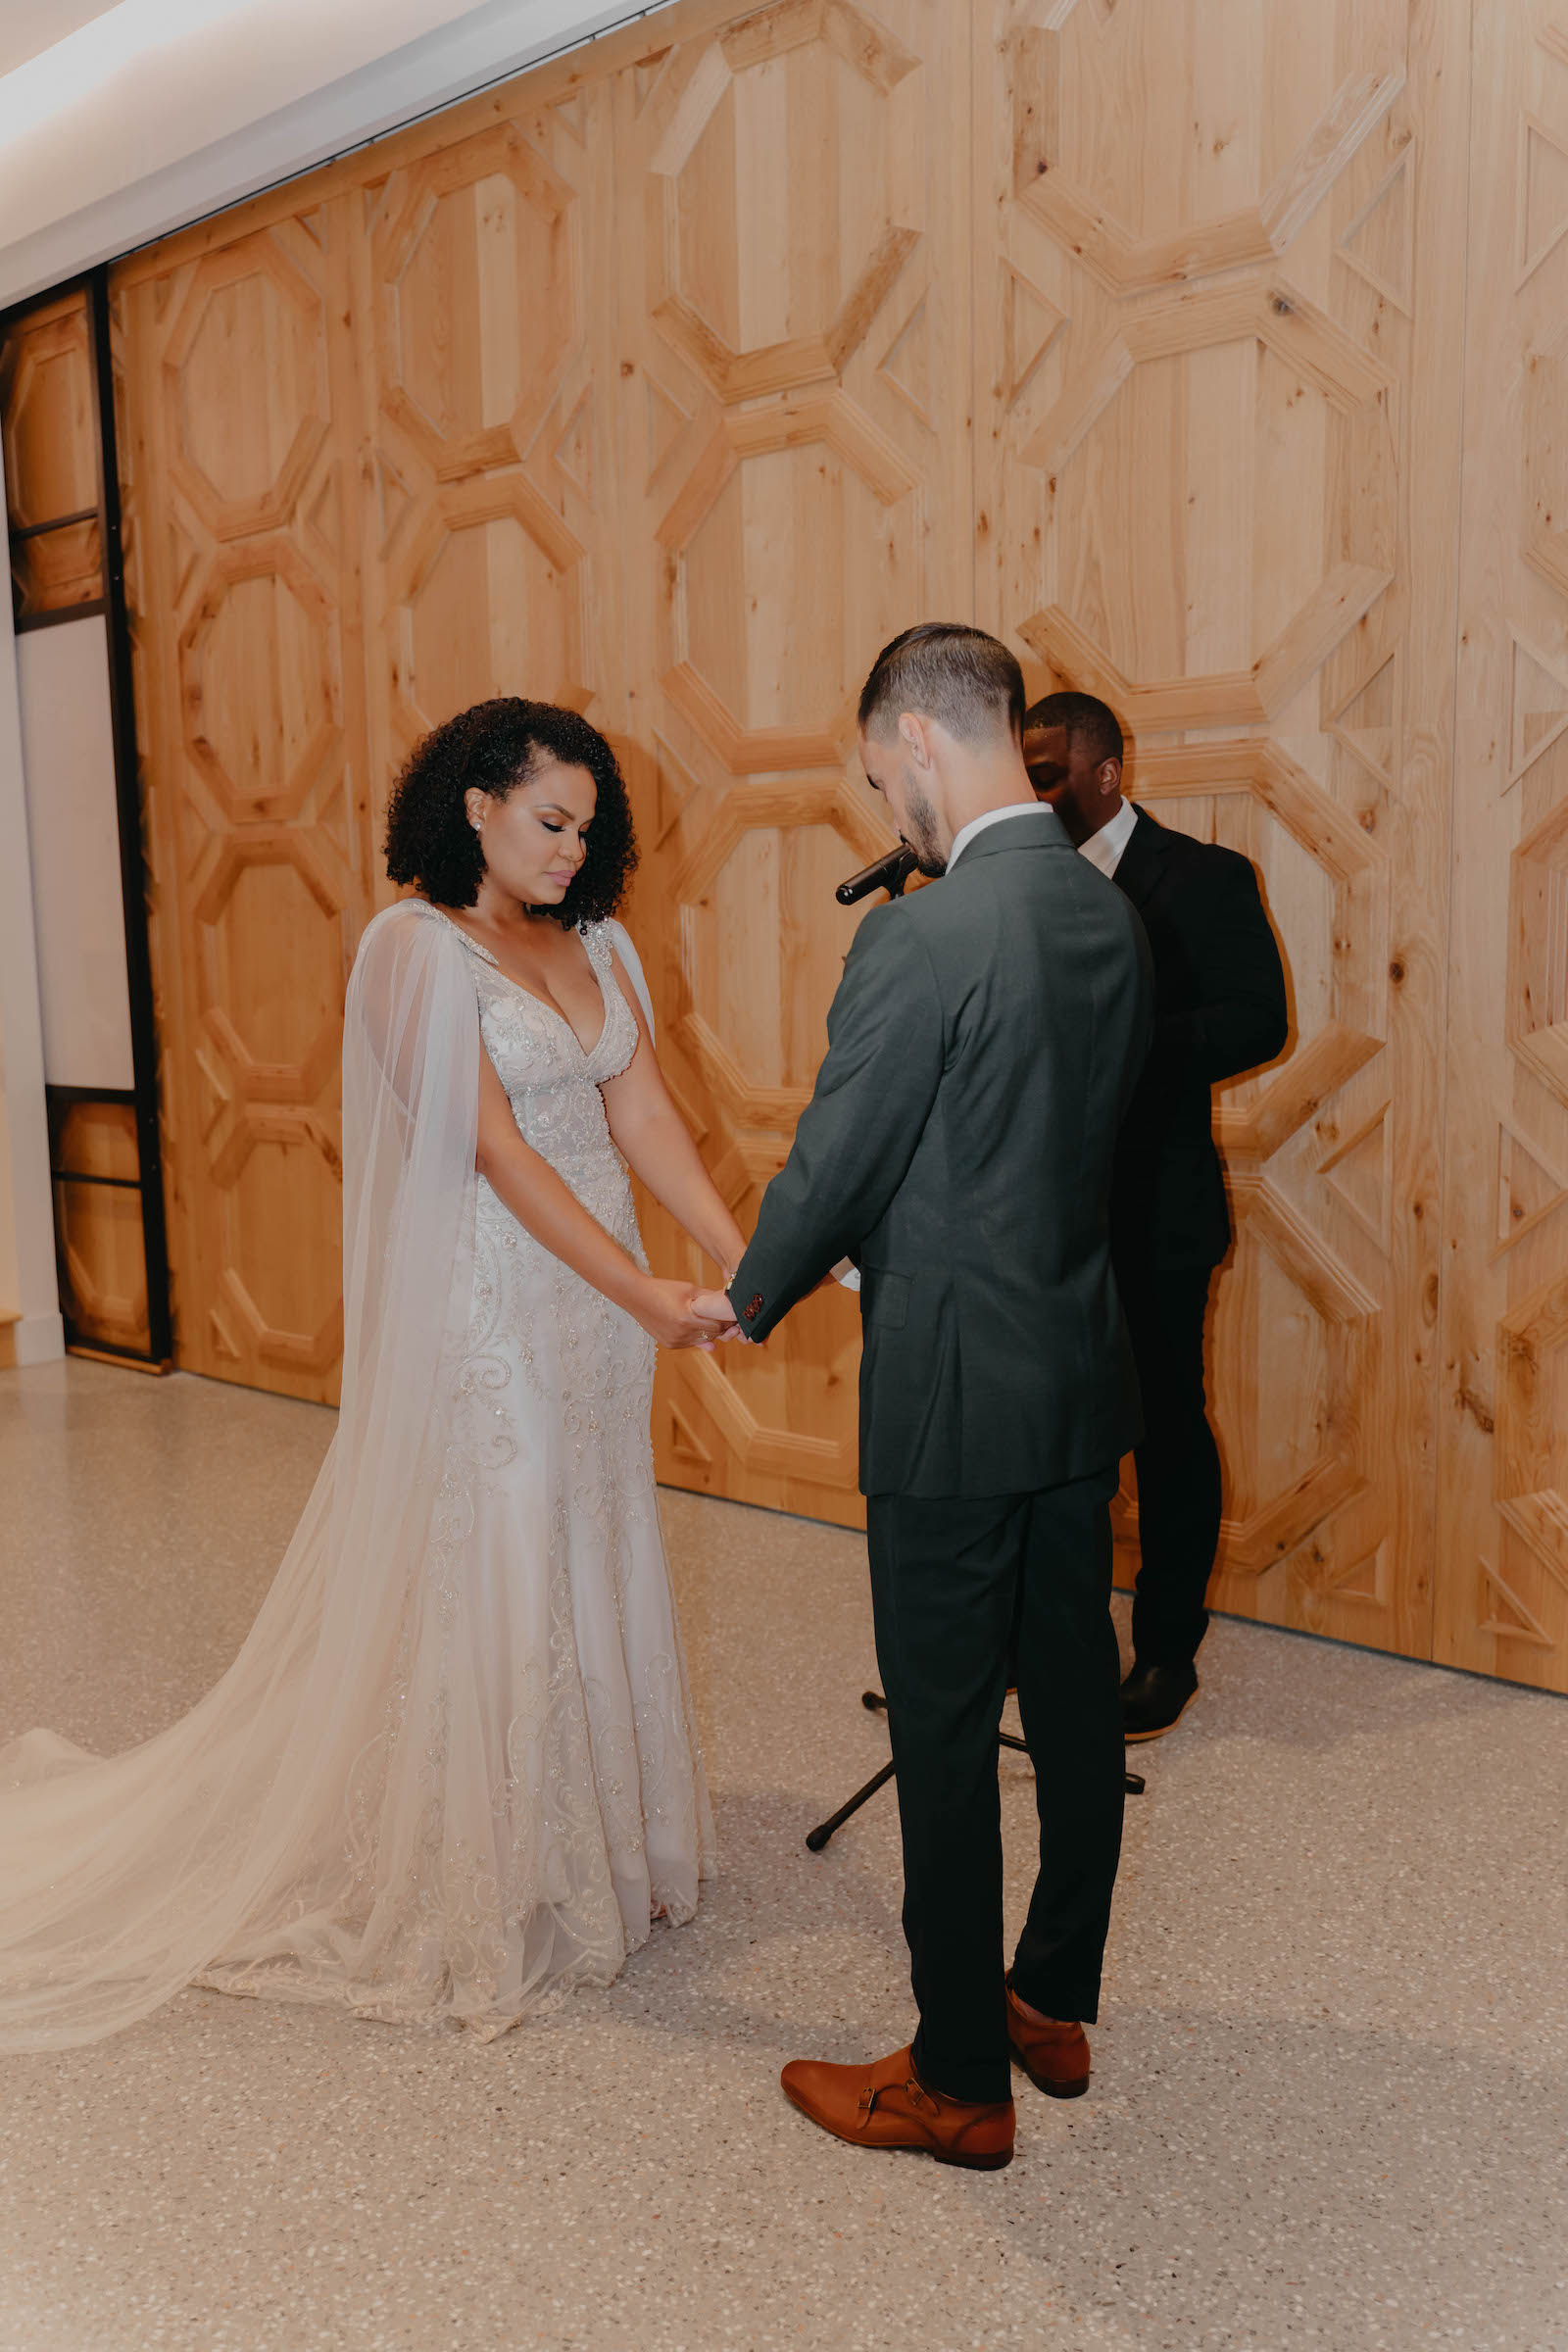 Indoor Wedding Ceremony in Tampa Wedding Venue Hyde House   Illusion Lace Embroidered Beaded V Neck Wedding Dress Bridal Gown with Sheer Tulle Cape Sleeves by Designer Amalia Carrara Bridal